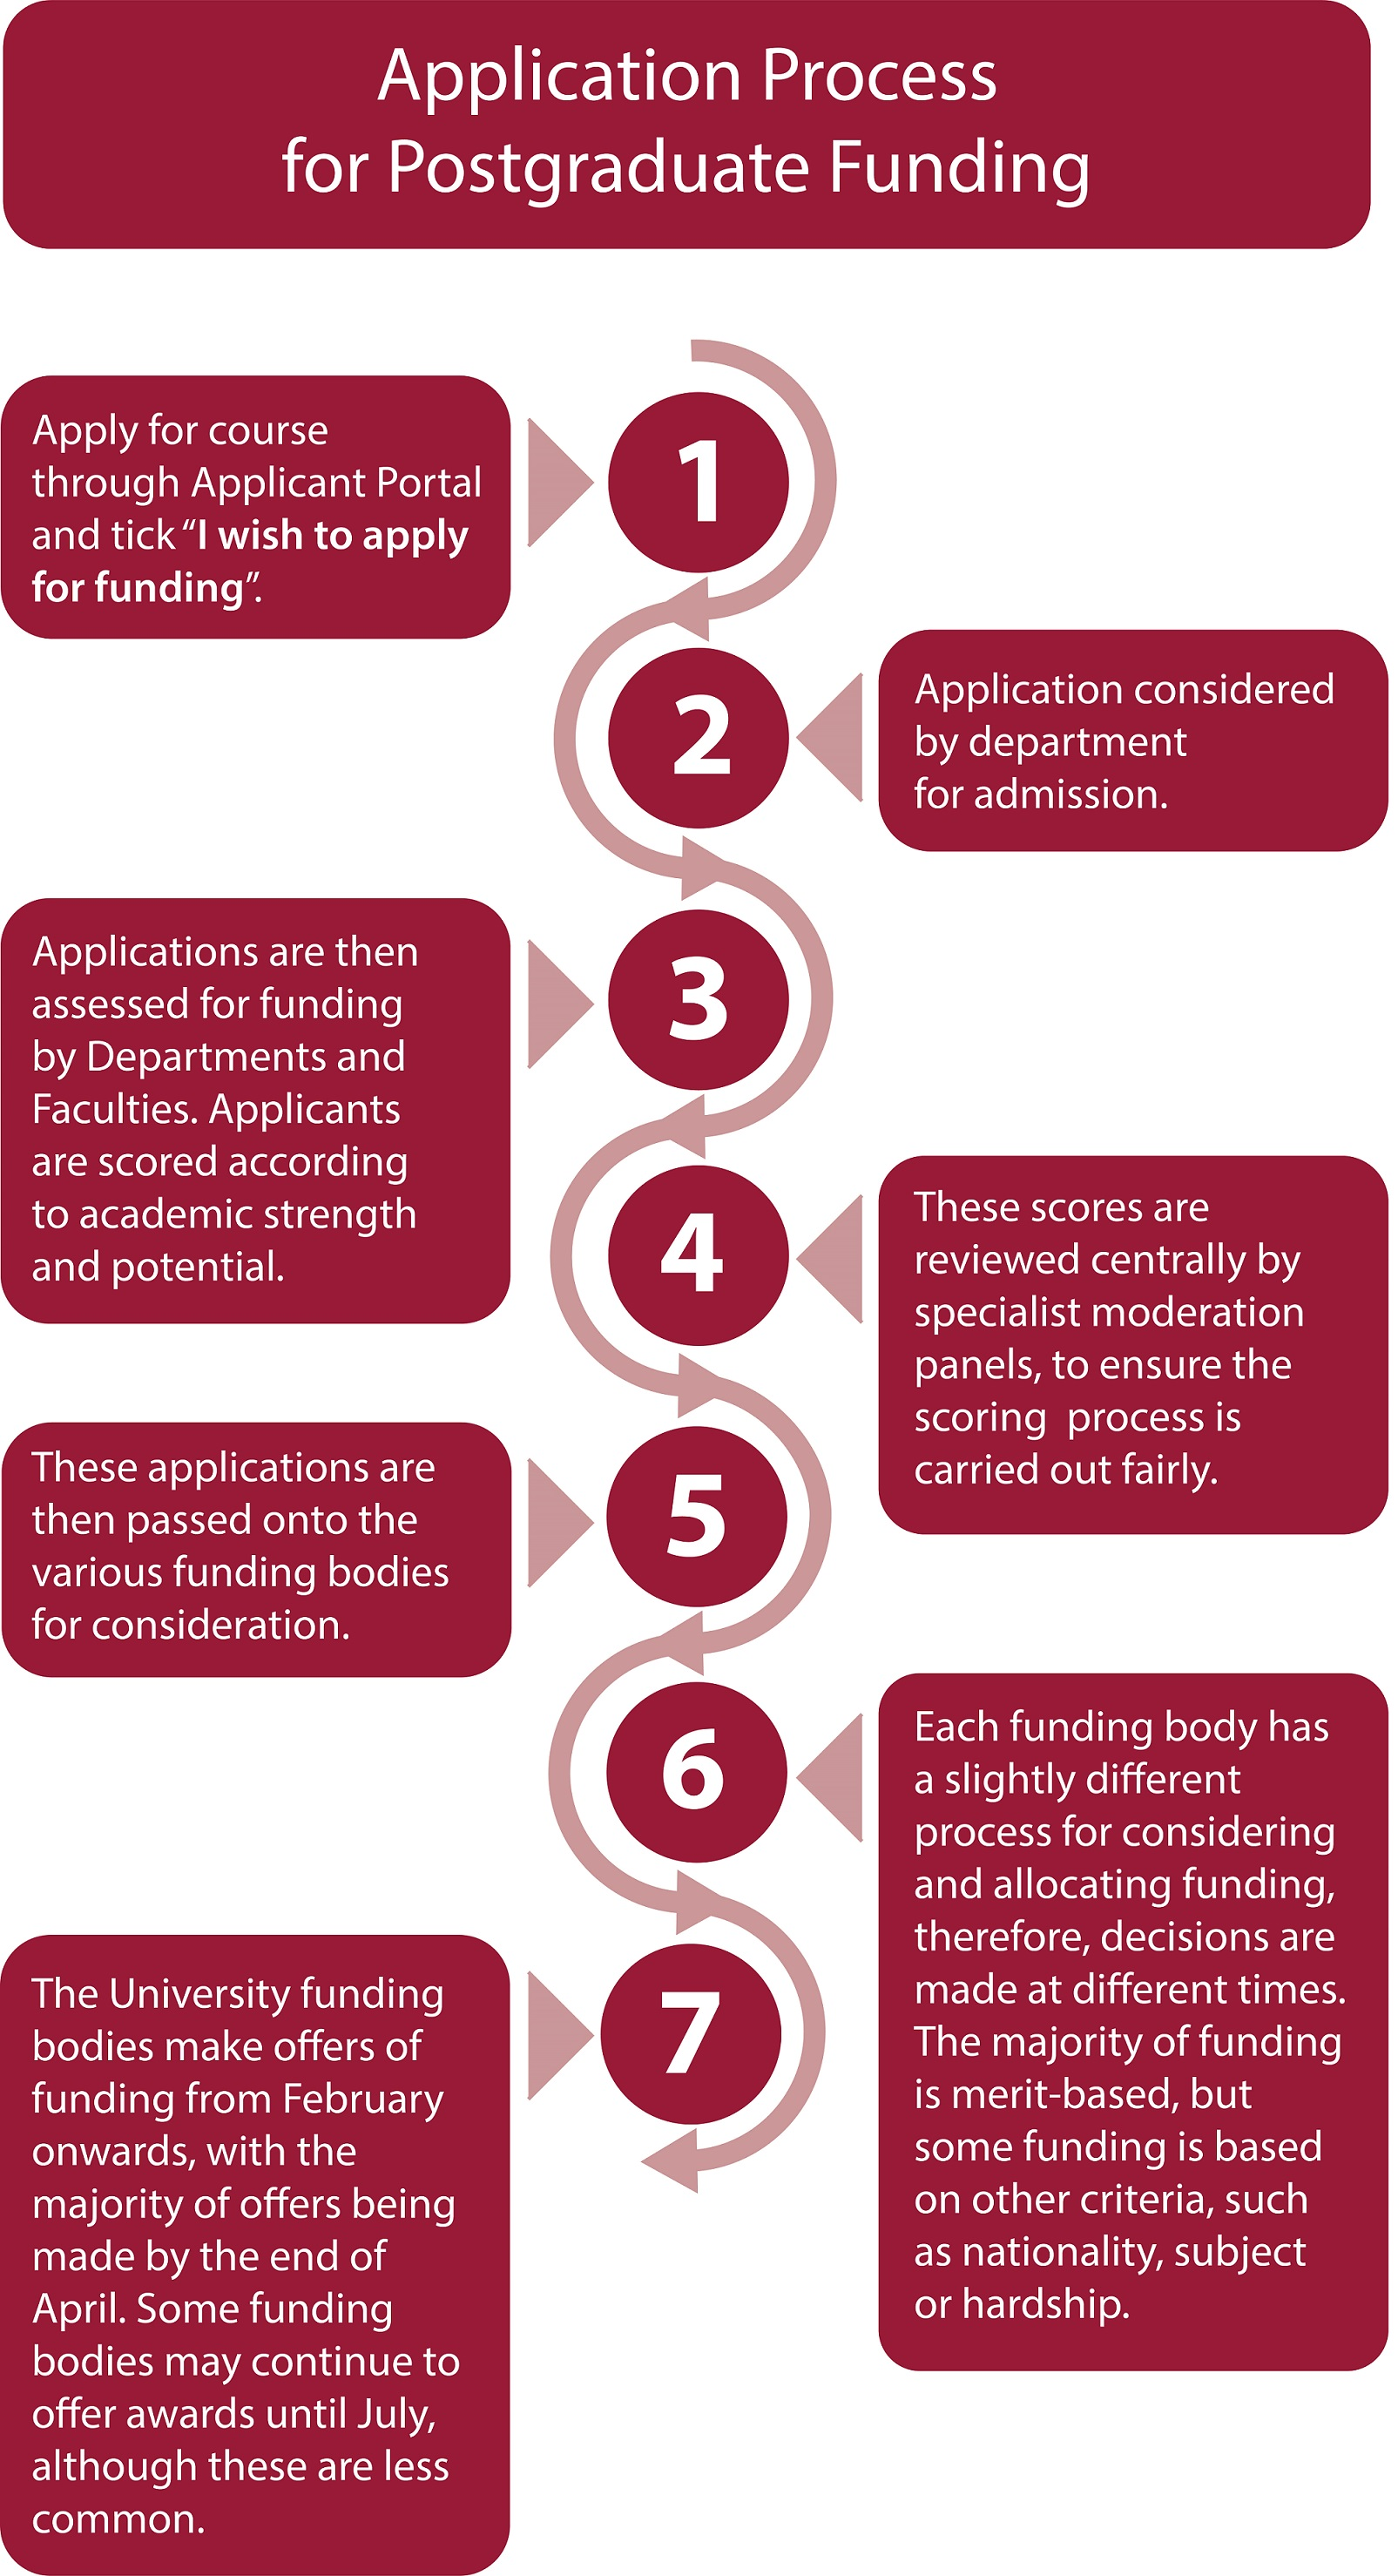 How is funding allocated when applied for through Applicant Portal